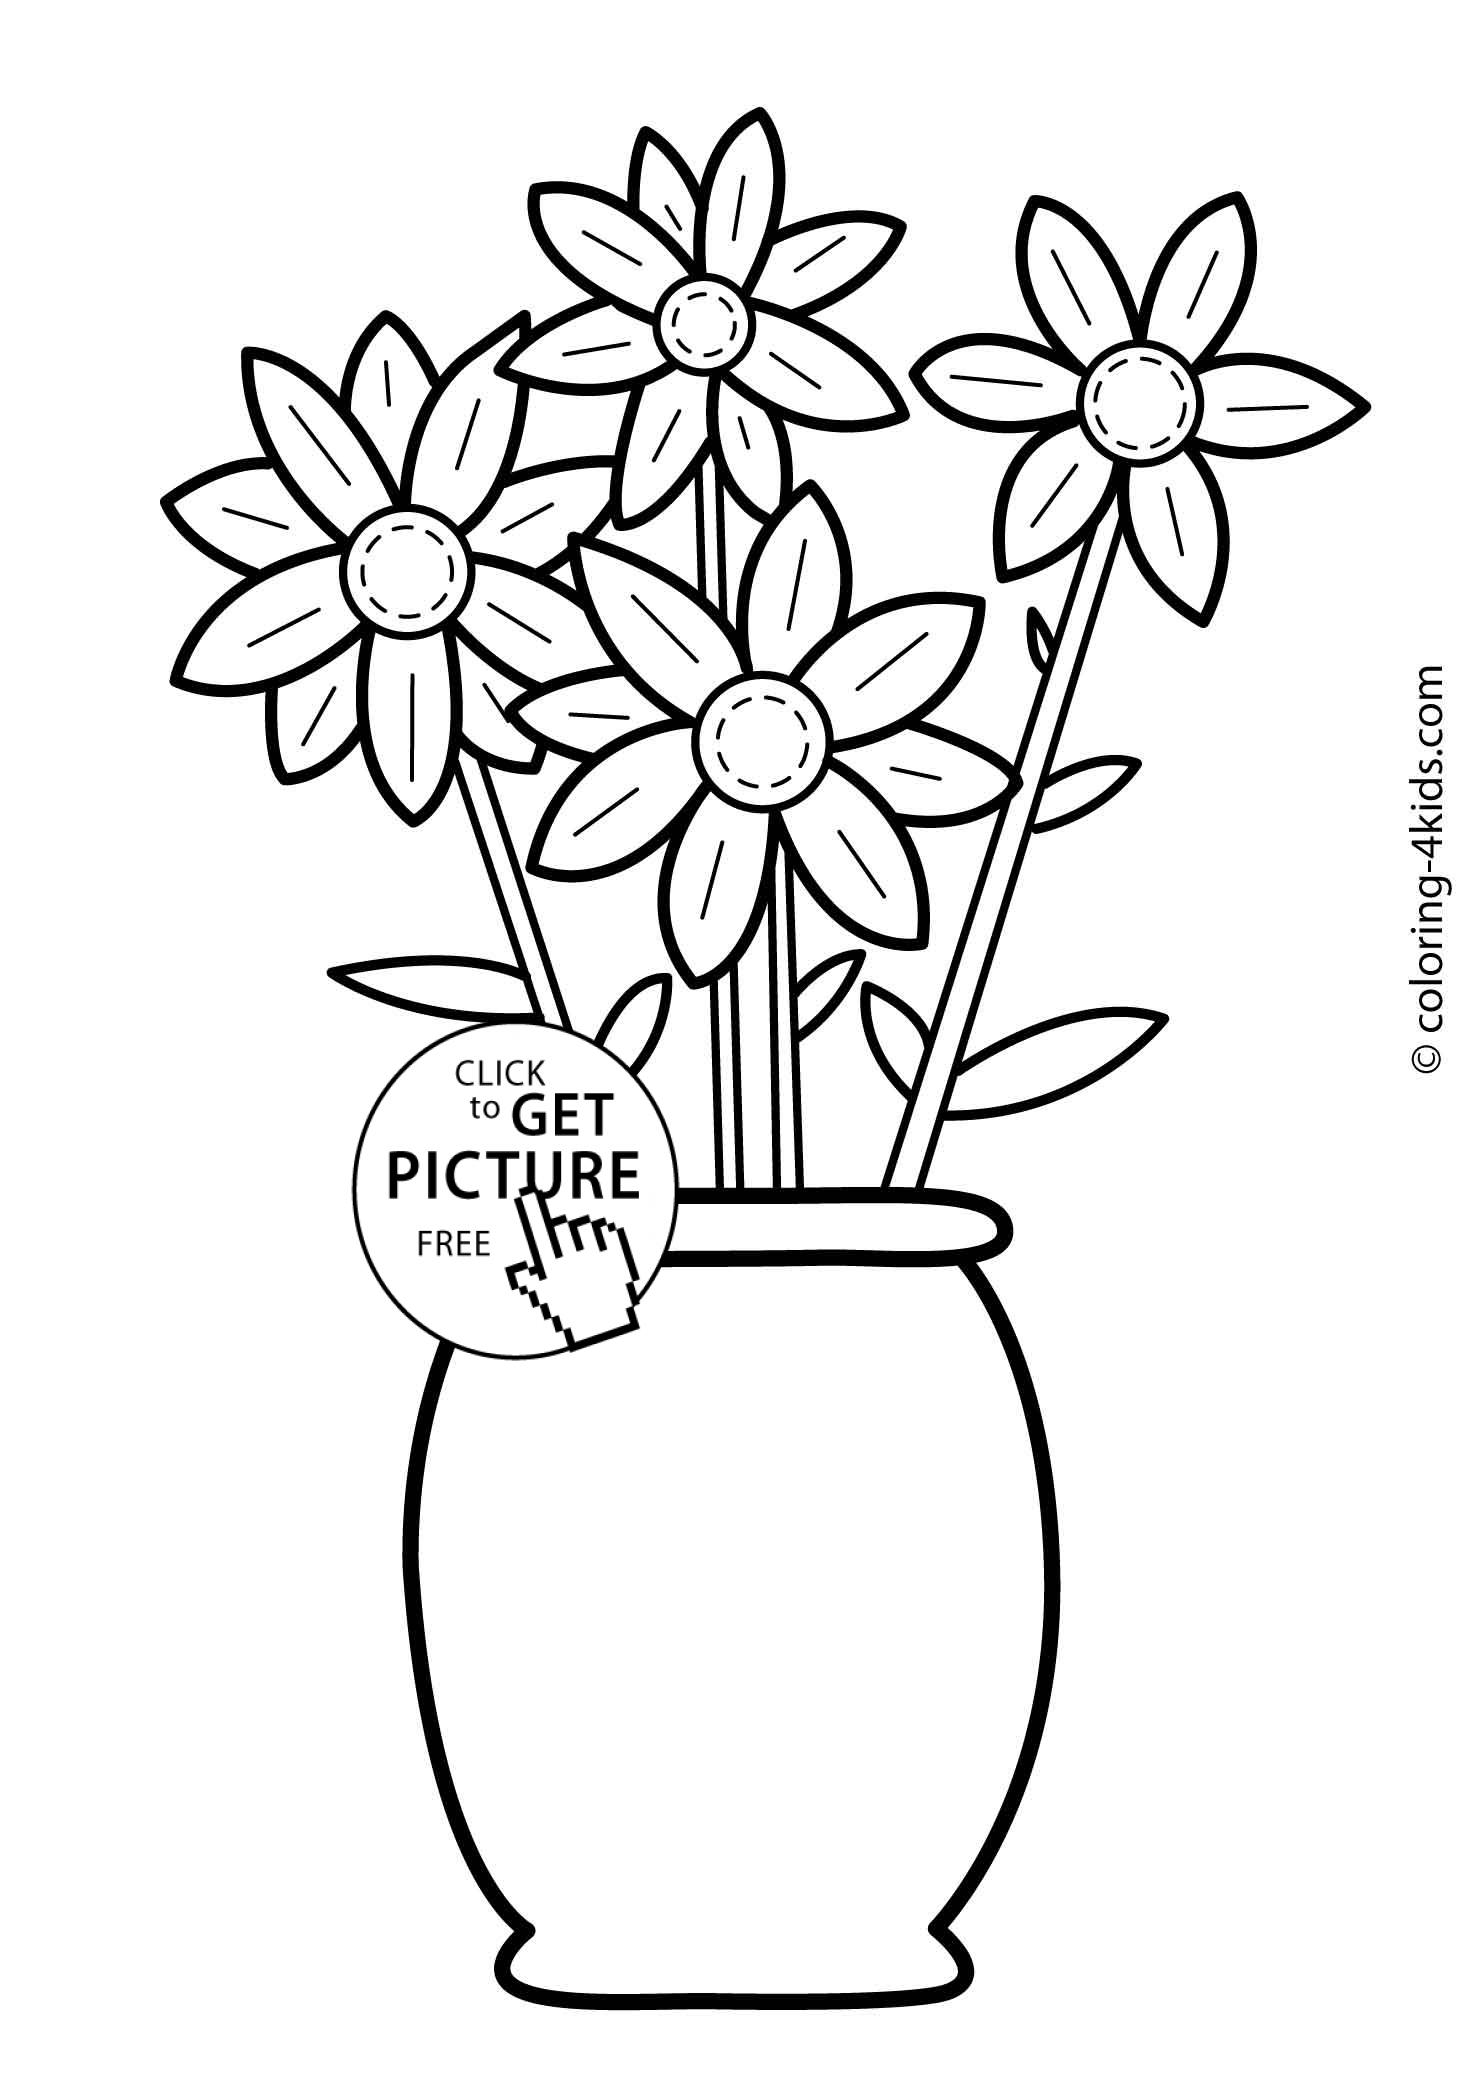 coloring picture of flower spring flower coloring pages to download and print for free coloring of picture flower